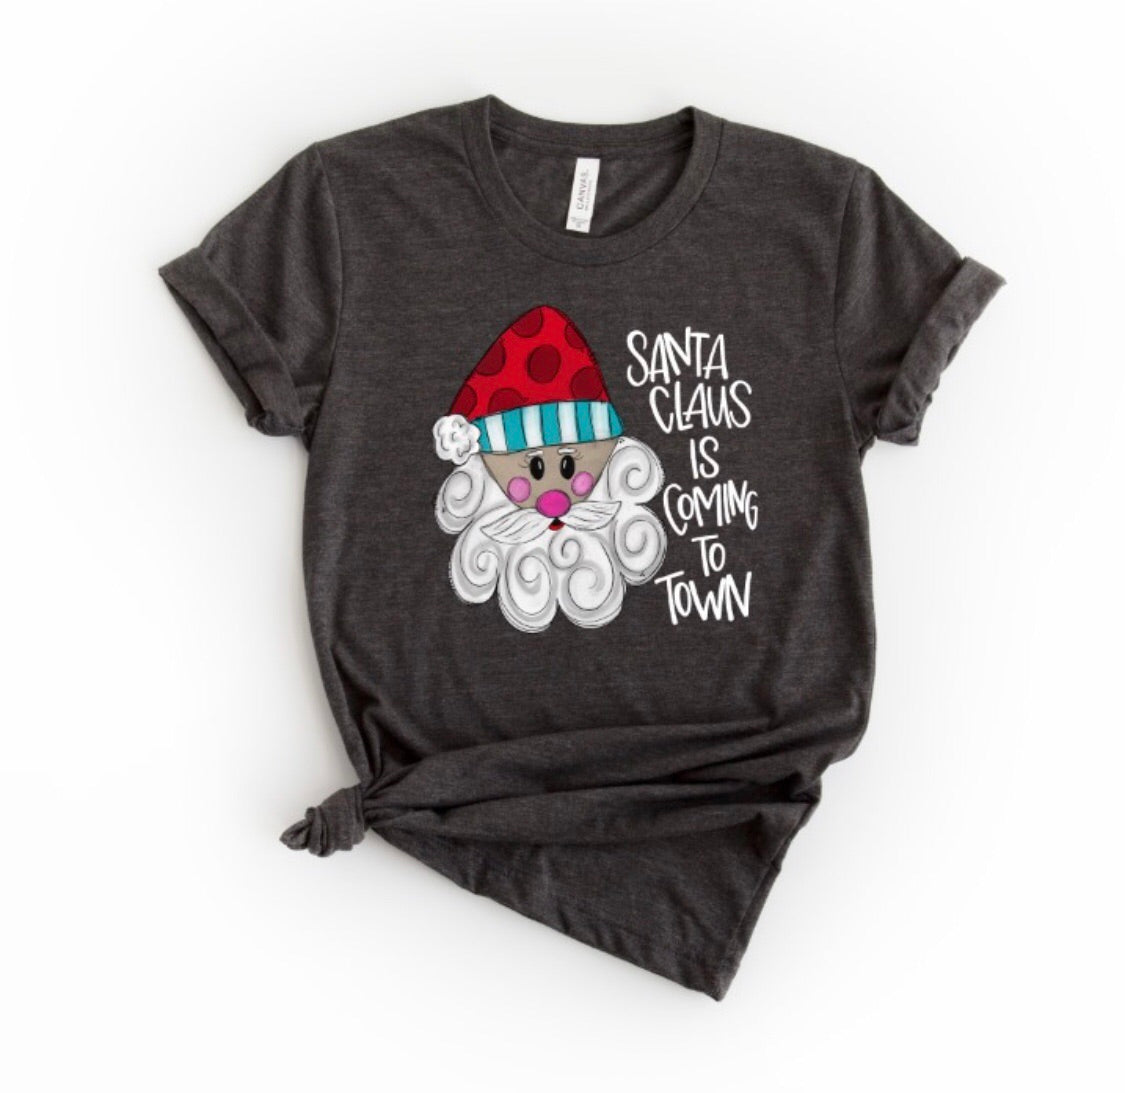 Santa Claus is Coming to Town T-shirt